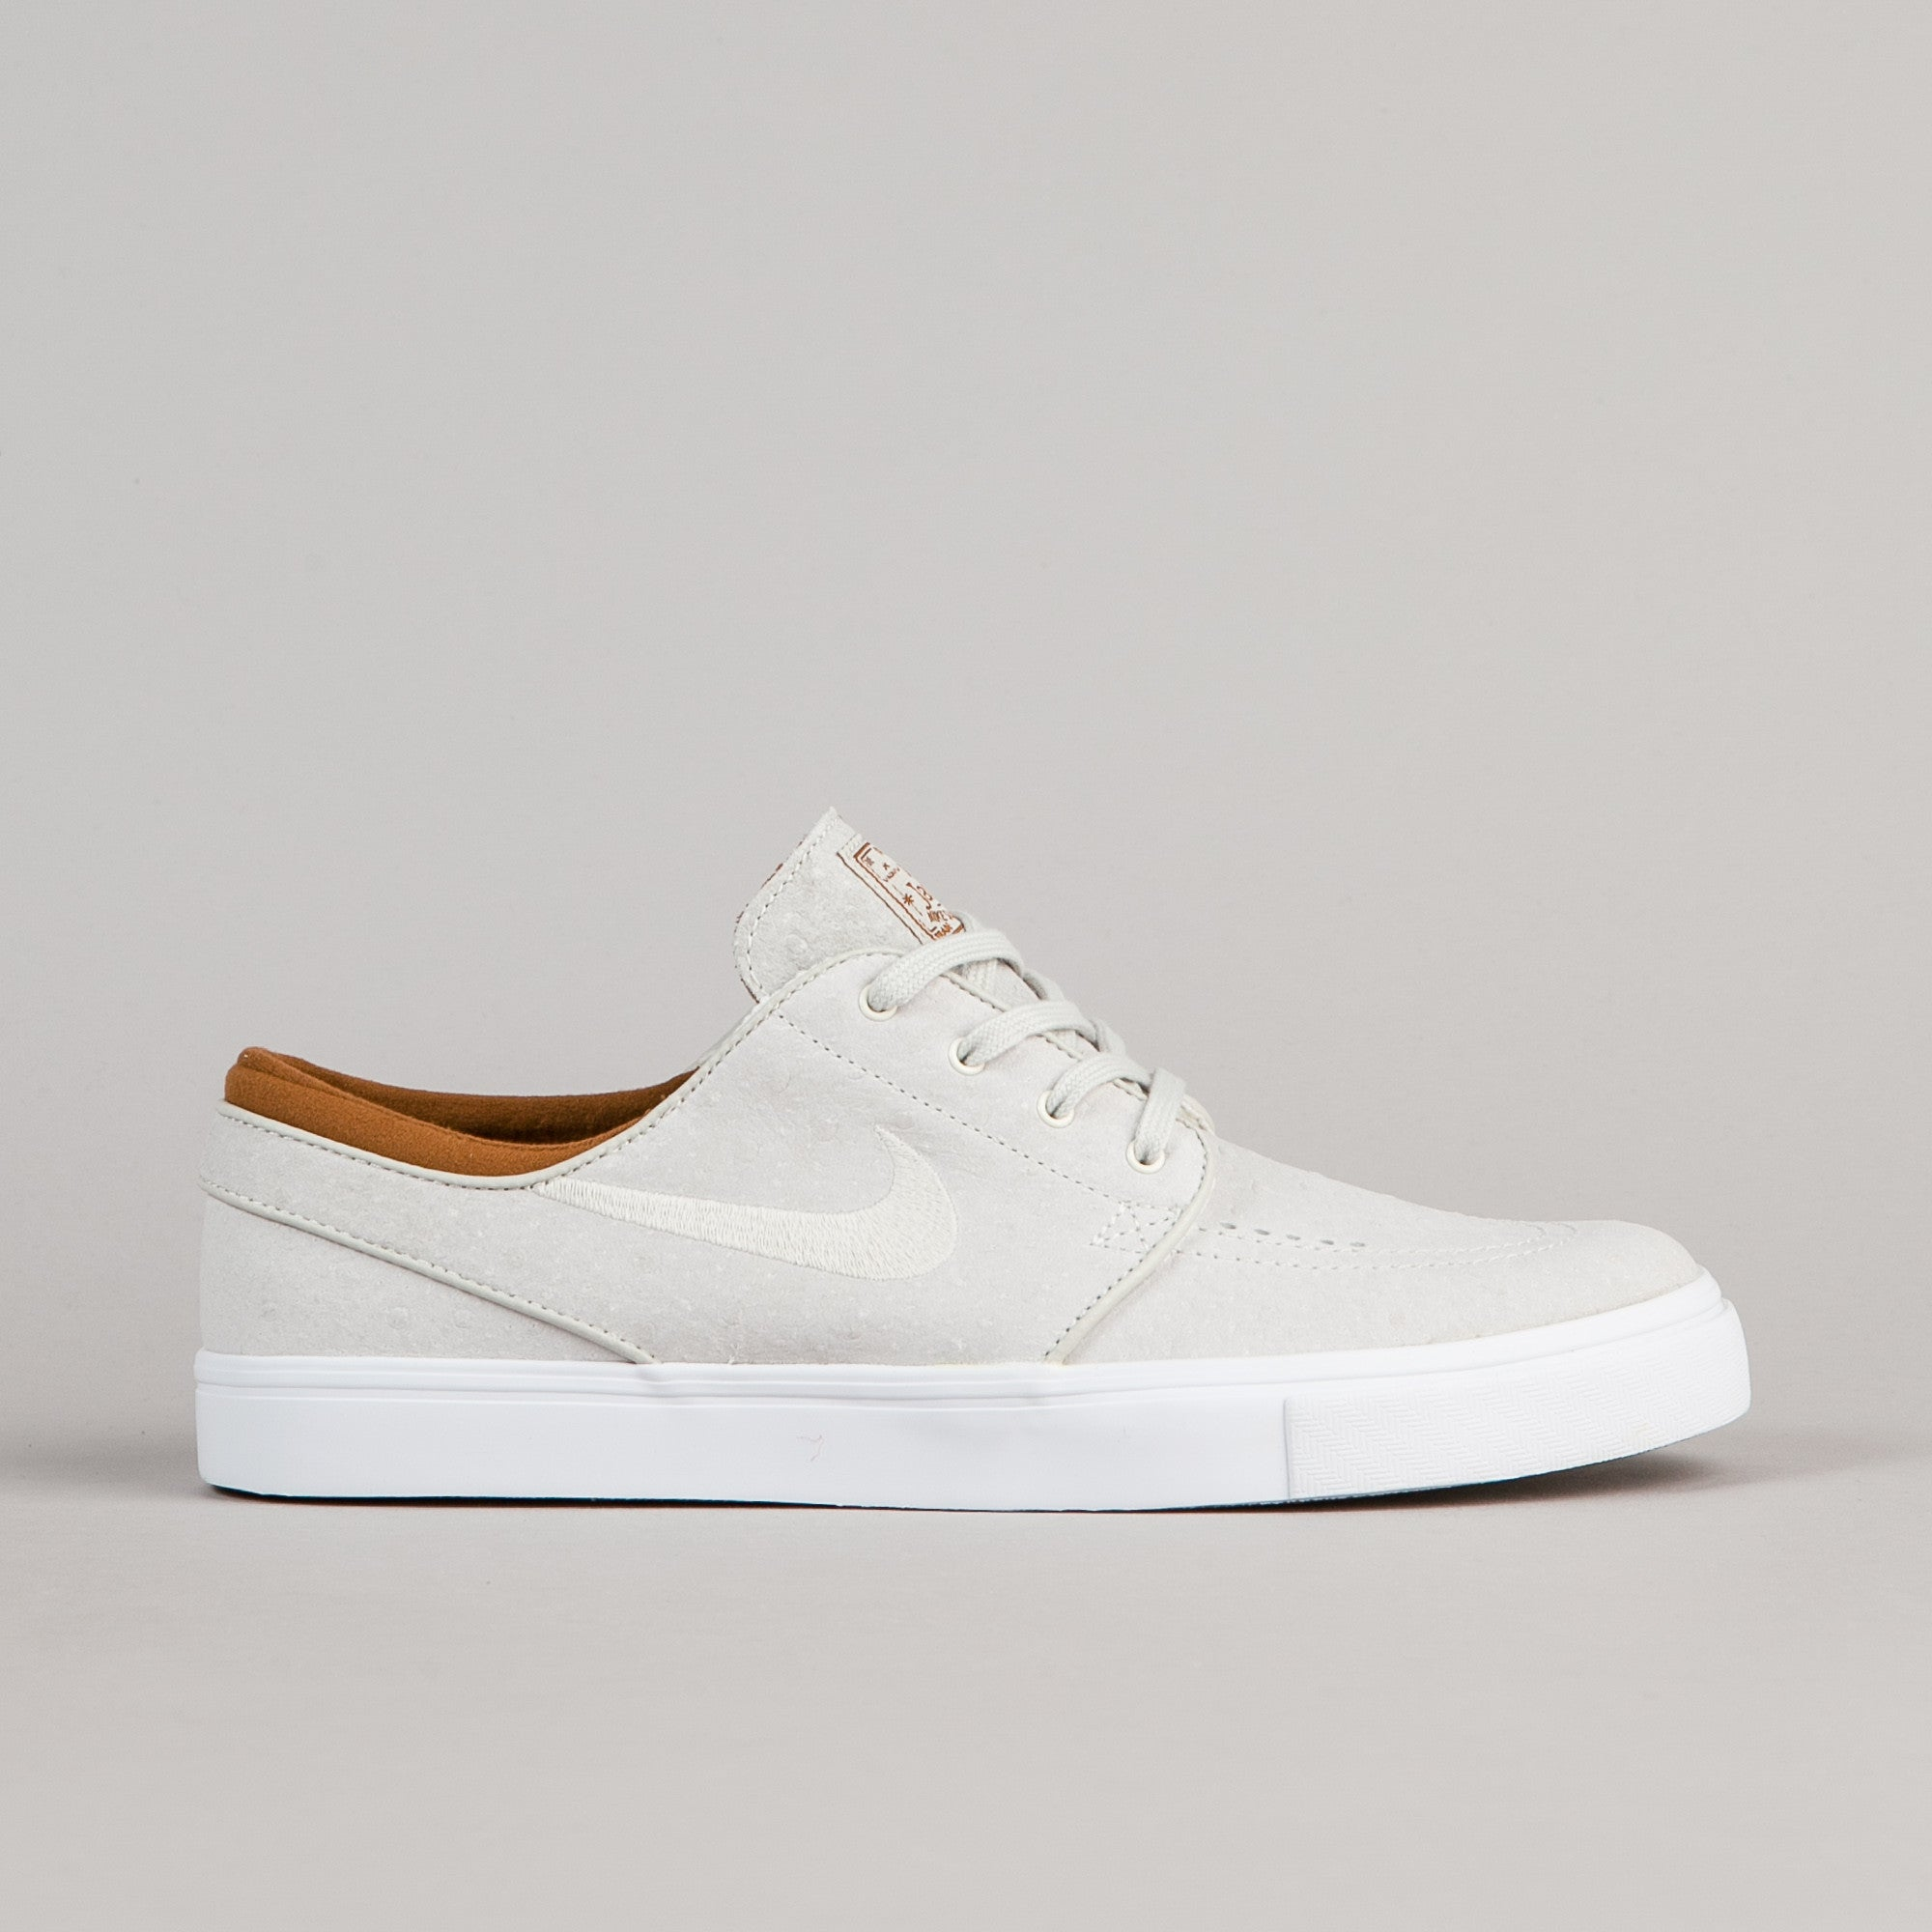 a522f97f359a ... promo code for nike sb stefan janoski leather shoes ivory light bone  hazelnut 780c4 82d81